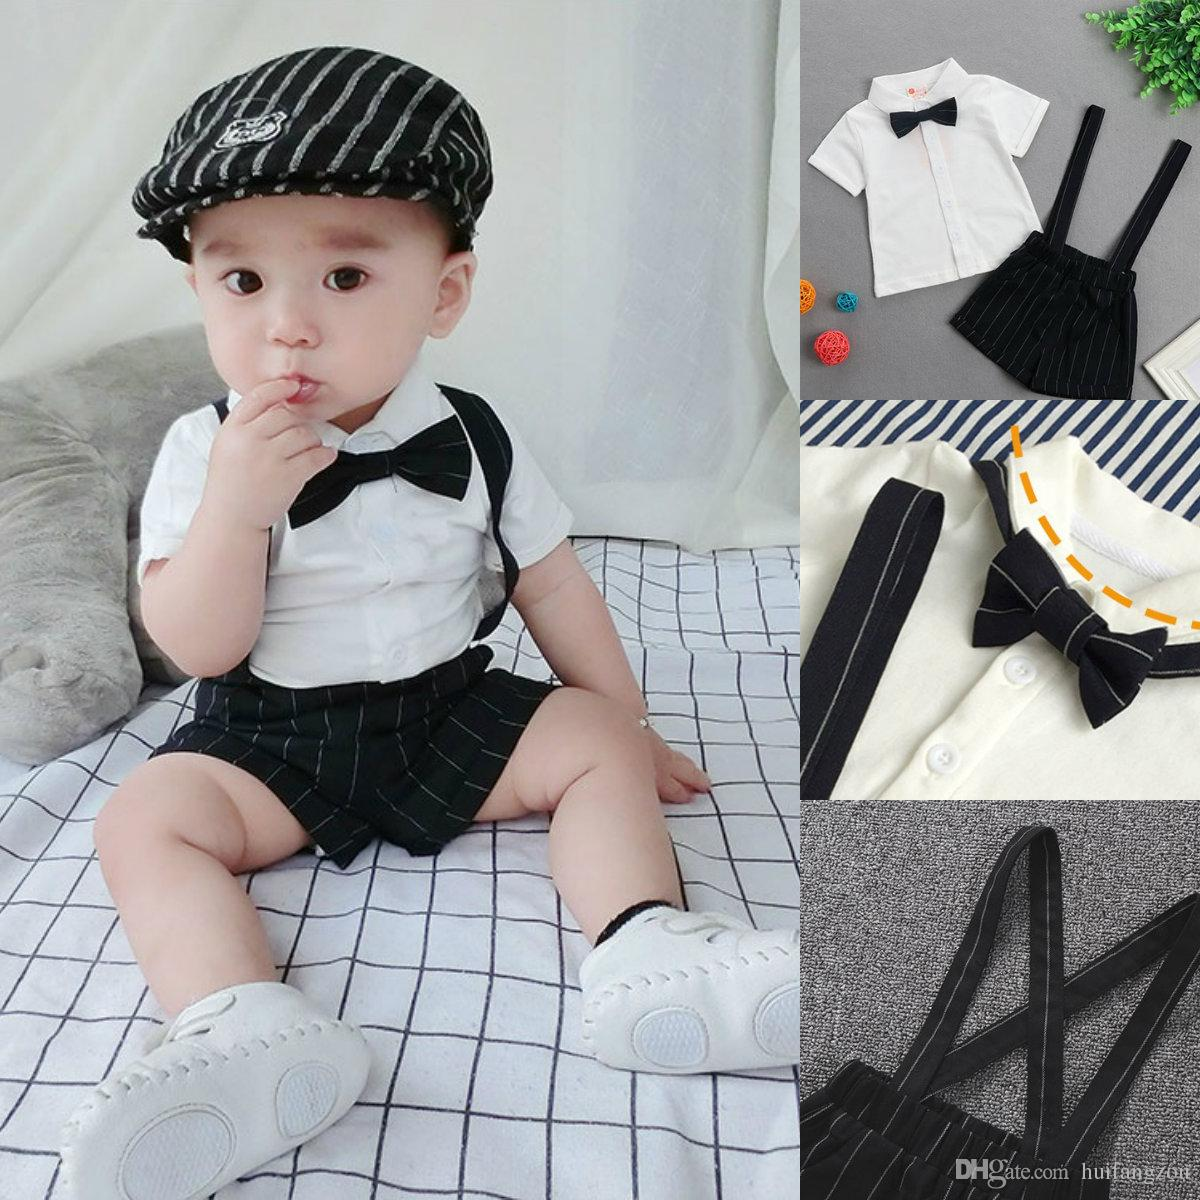 61df143612b38 New Arrival Baby Boy Clothes Cute Three Pieces 100% Cotton Comfortable  Spring Summer Boys Clothing In Stock 3M 36M Hire Wedding Suits Kids  Clothings From ...